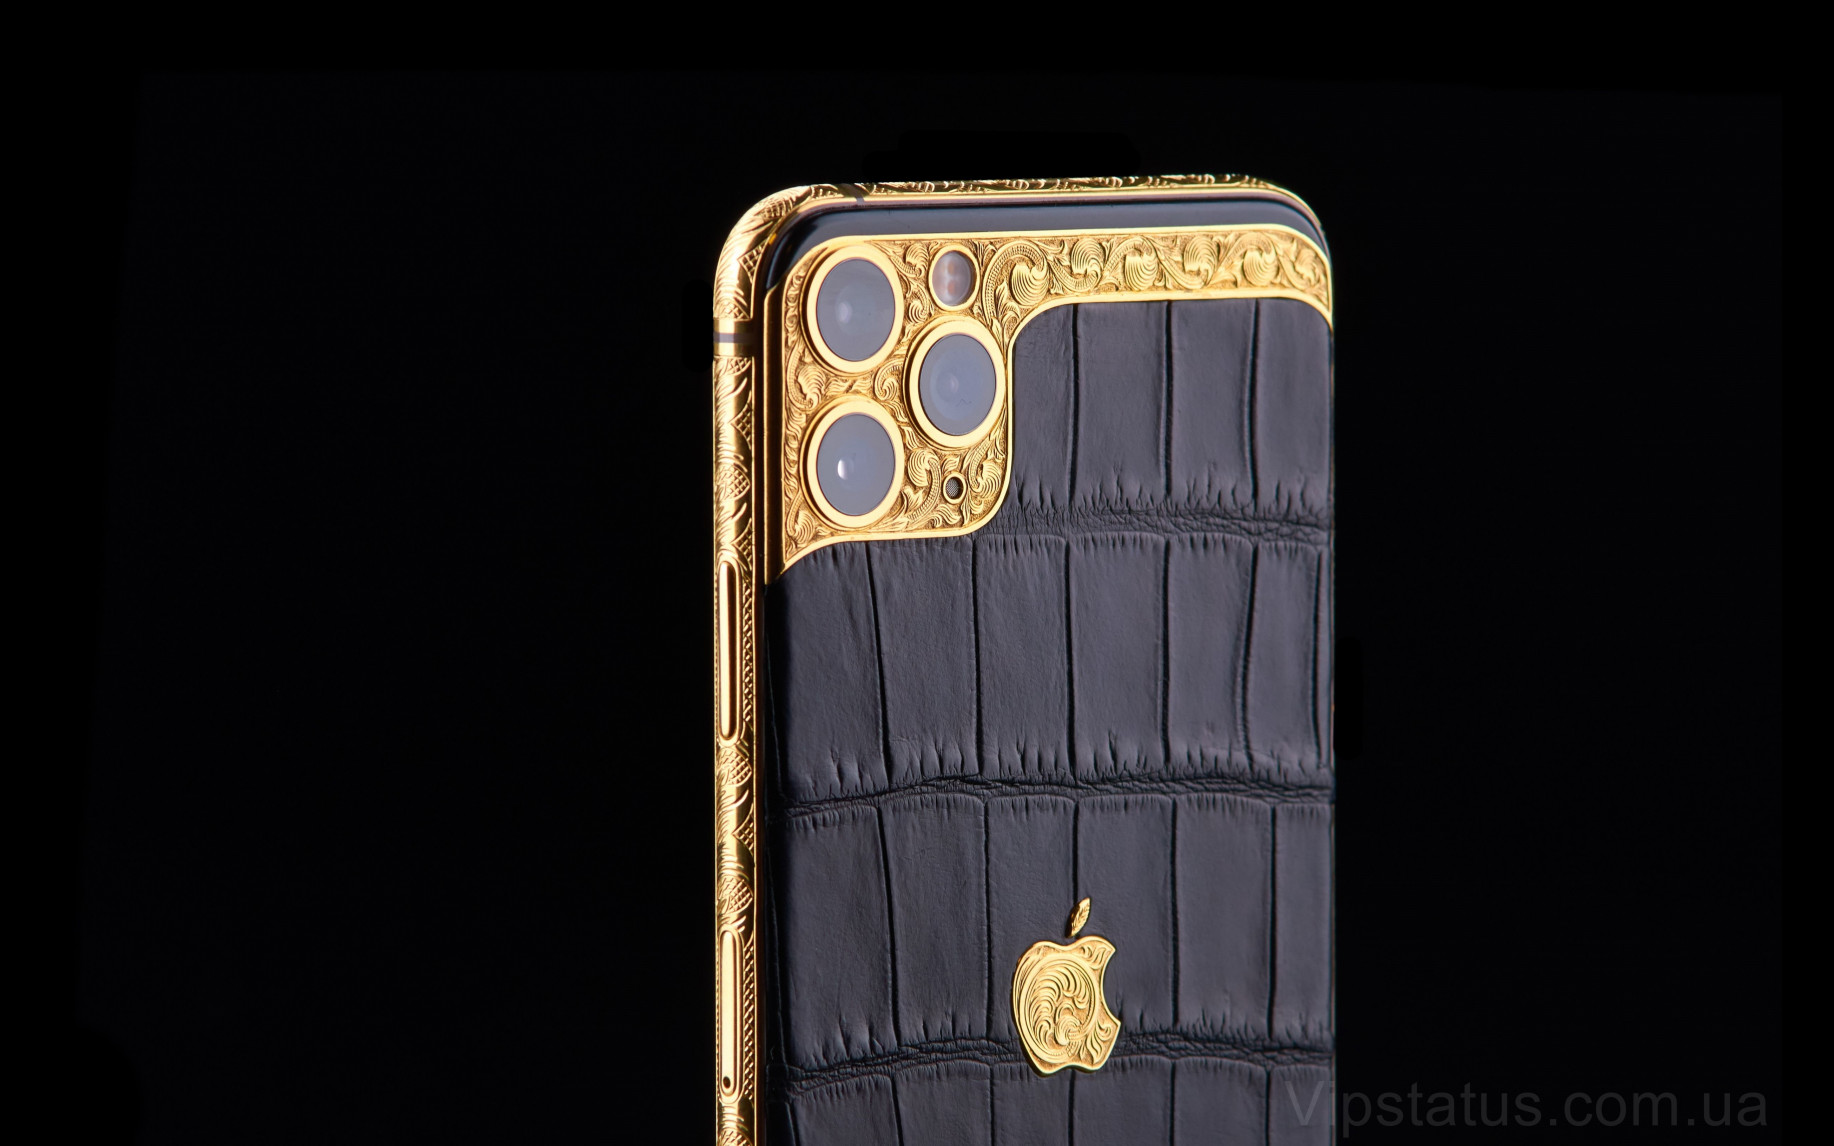 Elite English Lord IPHONE XS 512 GB English Lord IPHONE XS 512 GB image 2